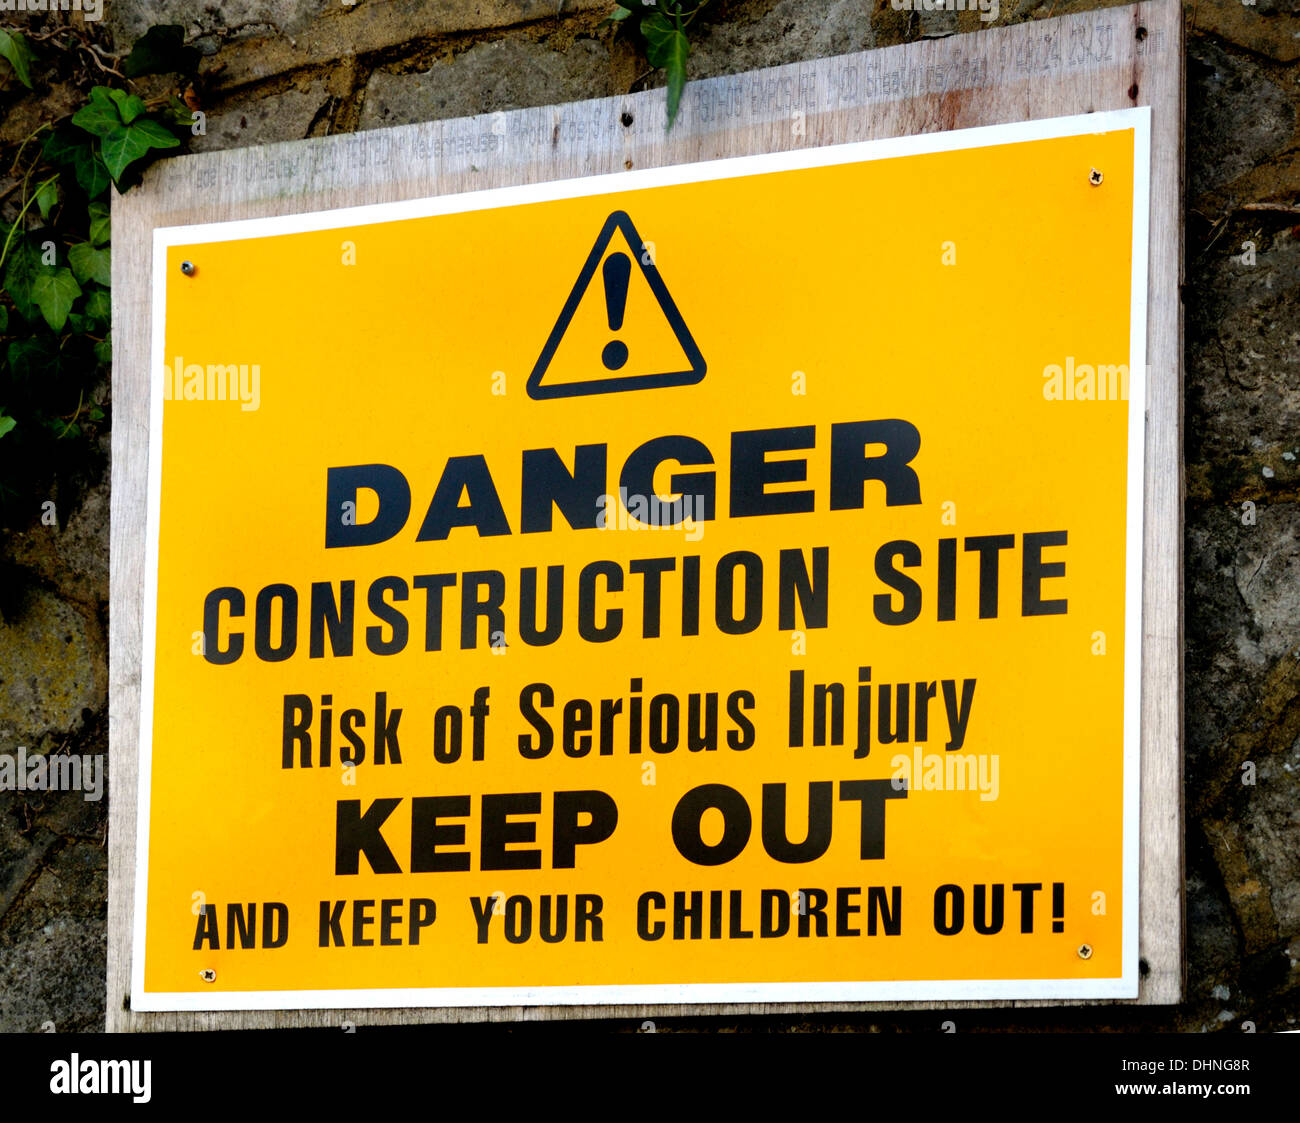 Construction site - Keep Out sign (Maidstone, England) - Stock Image